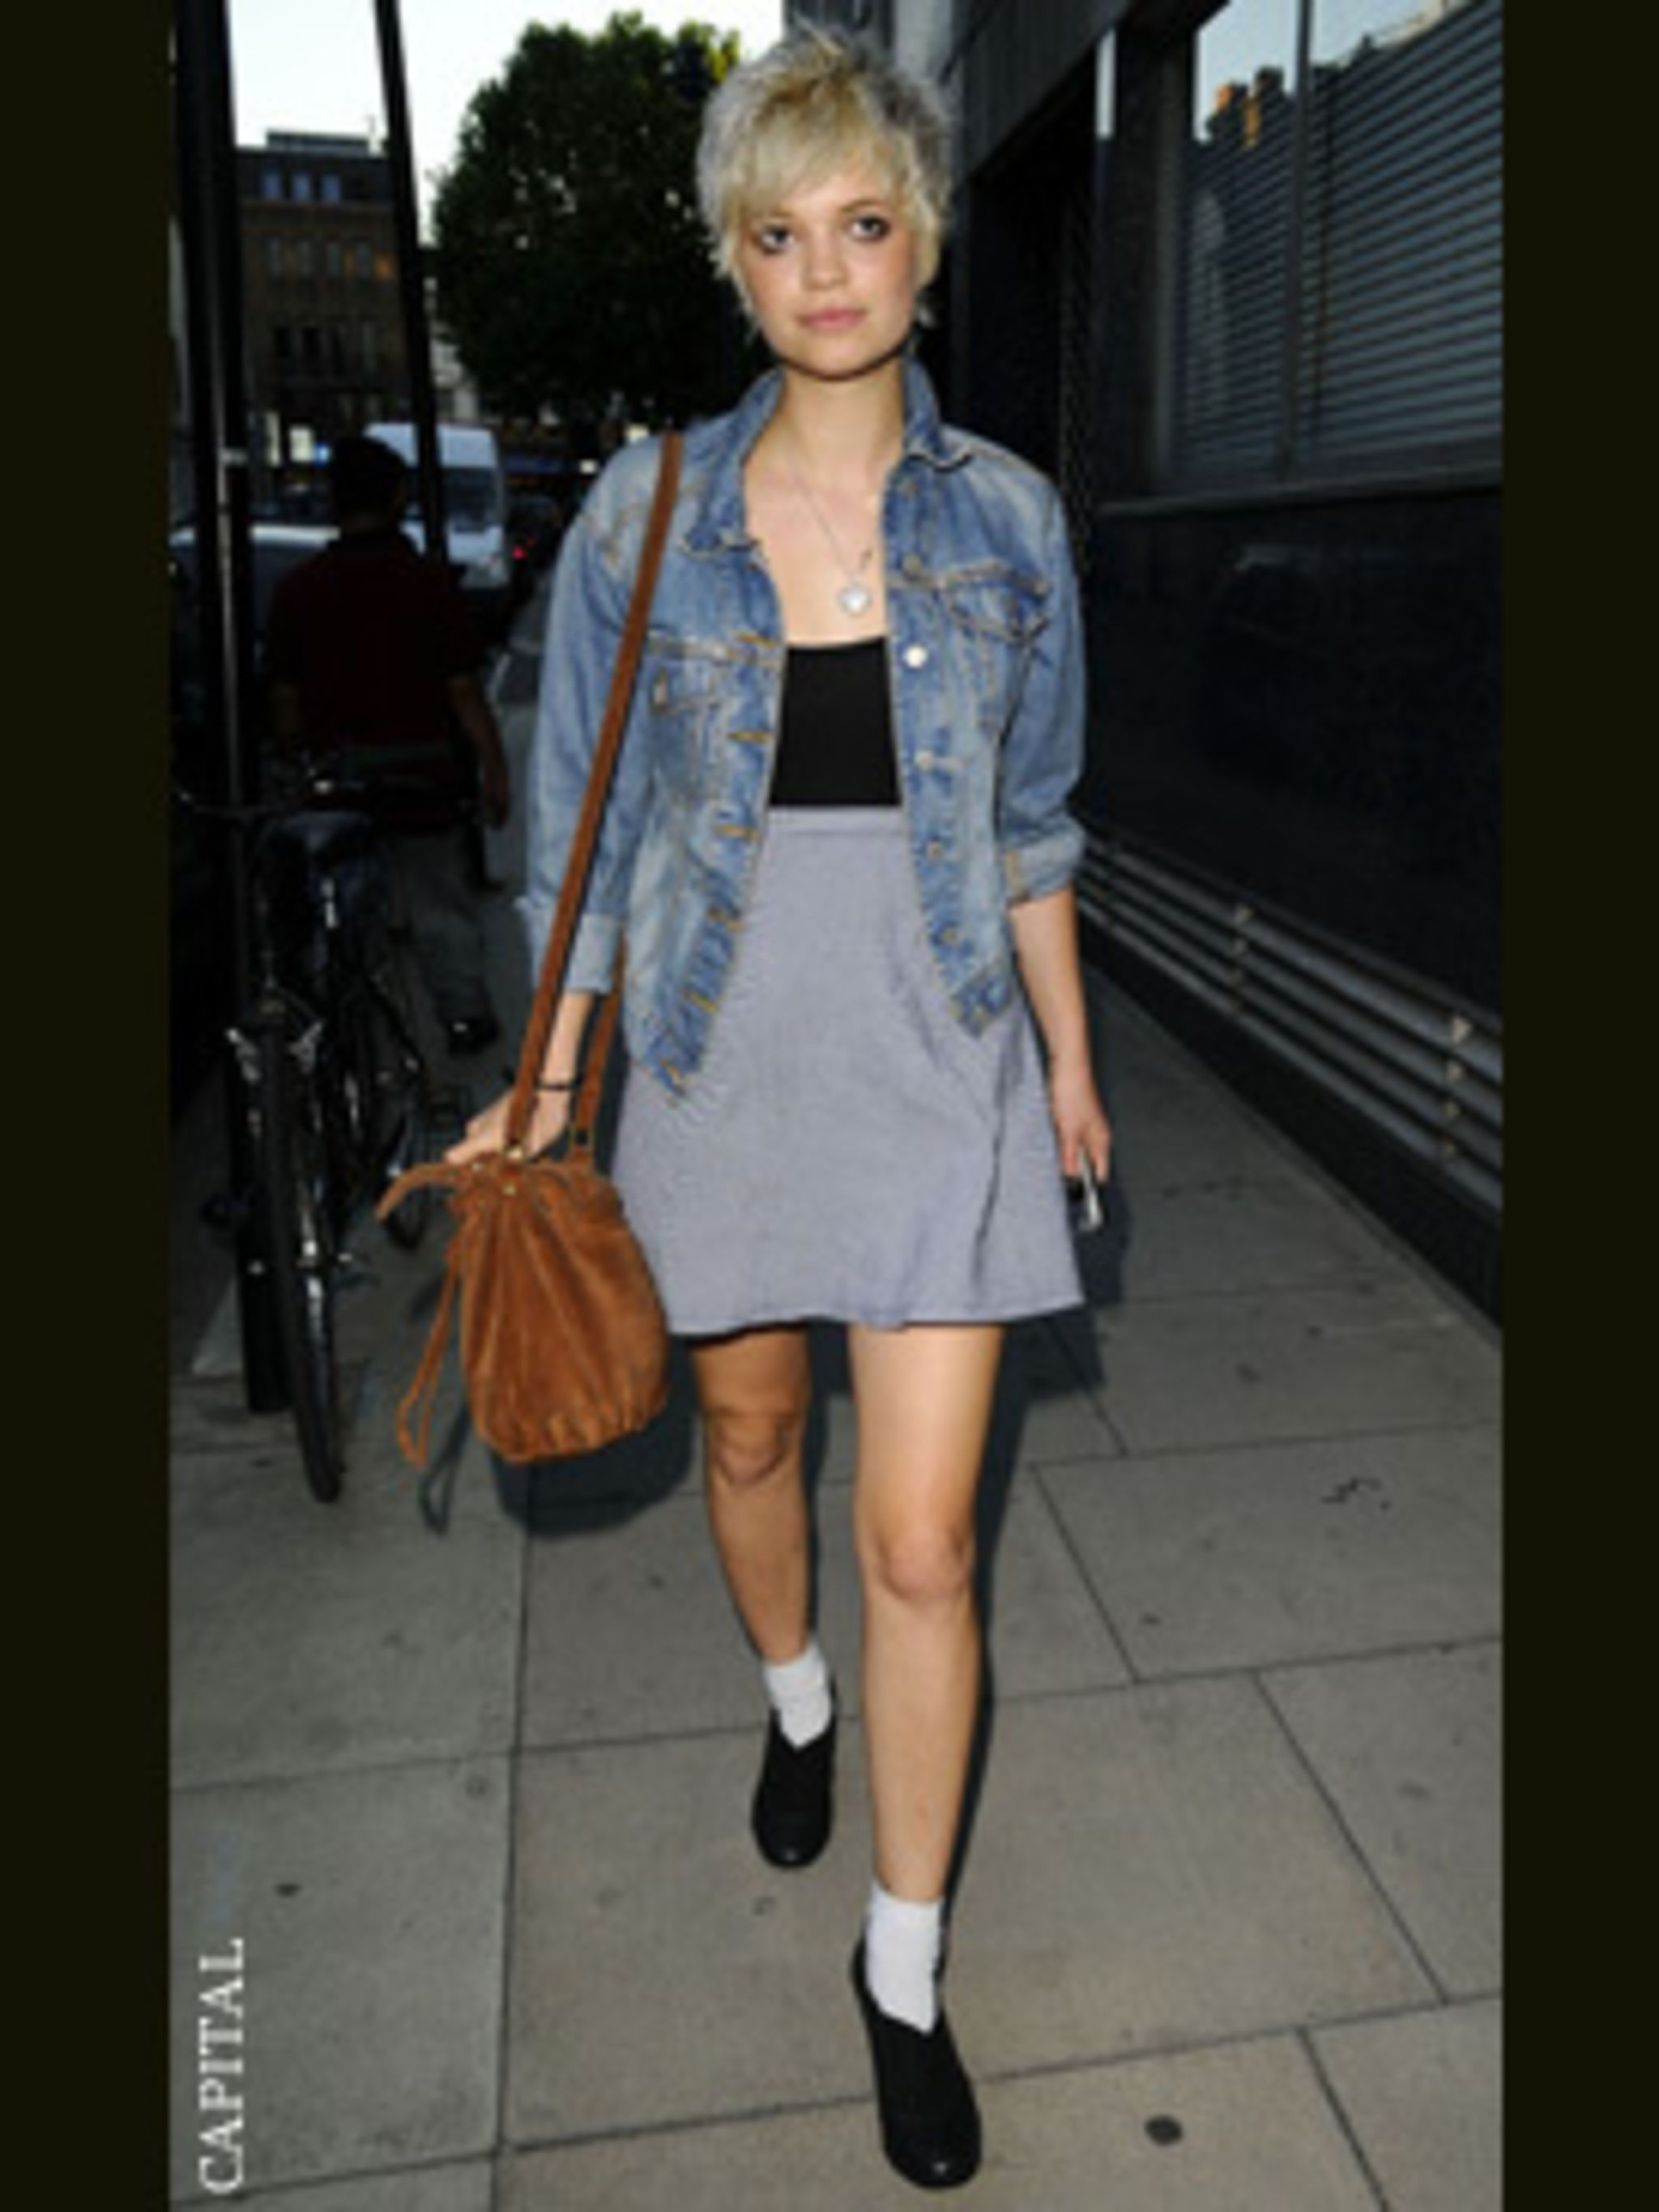 <p>Pixie Geldof works 1980s pale denim and bodycon trend in a vintage jacket, vintage suede bag and a body stocking</p>